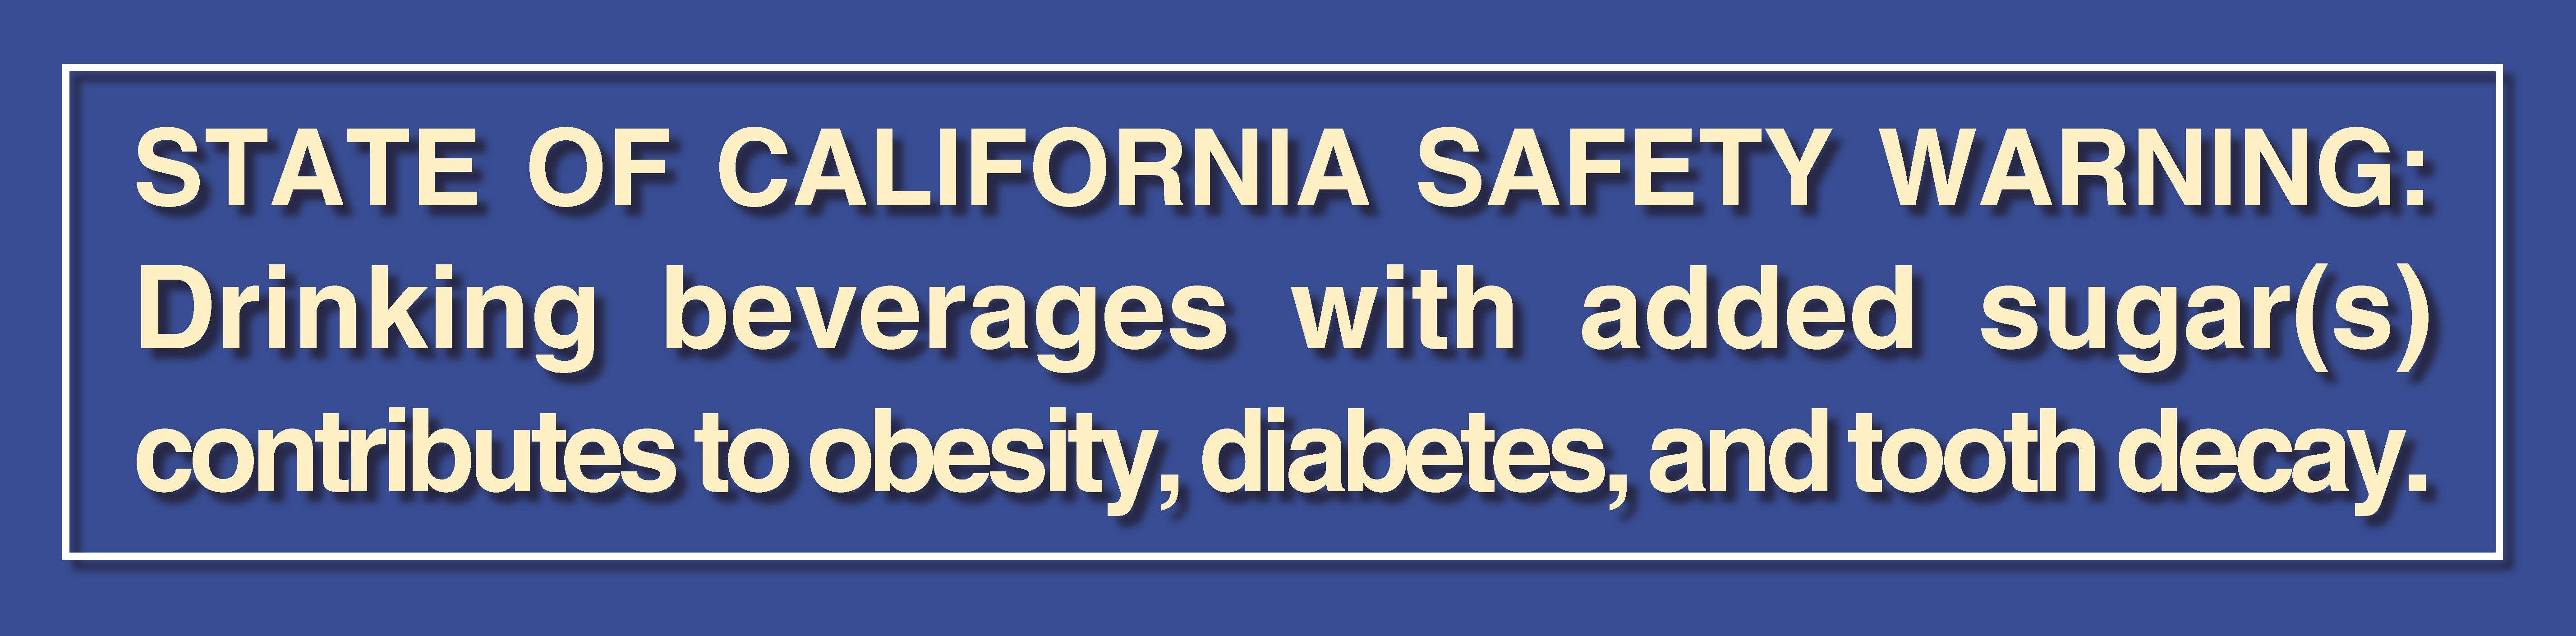 Warning label mock-up. Image: California Center for Public Health Advocacy